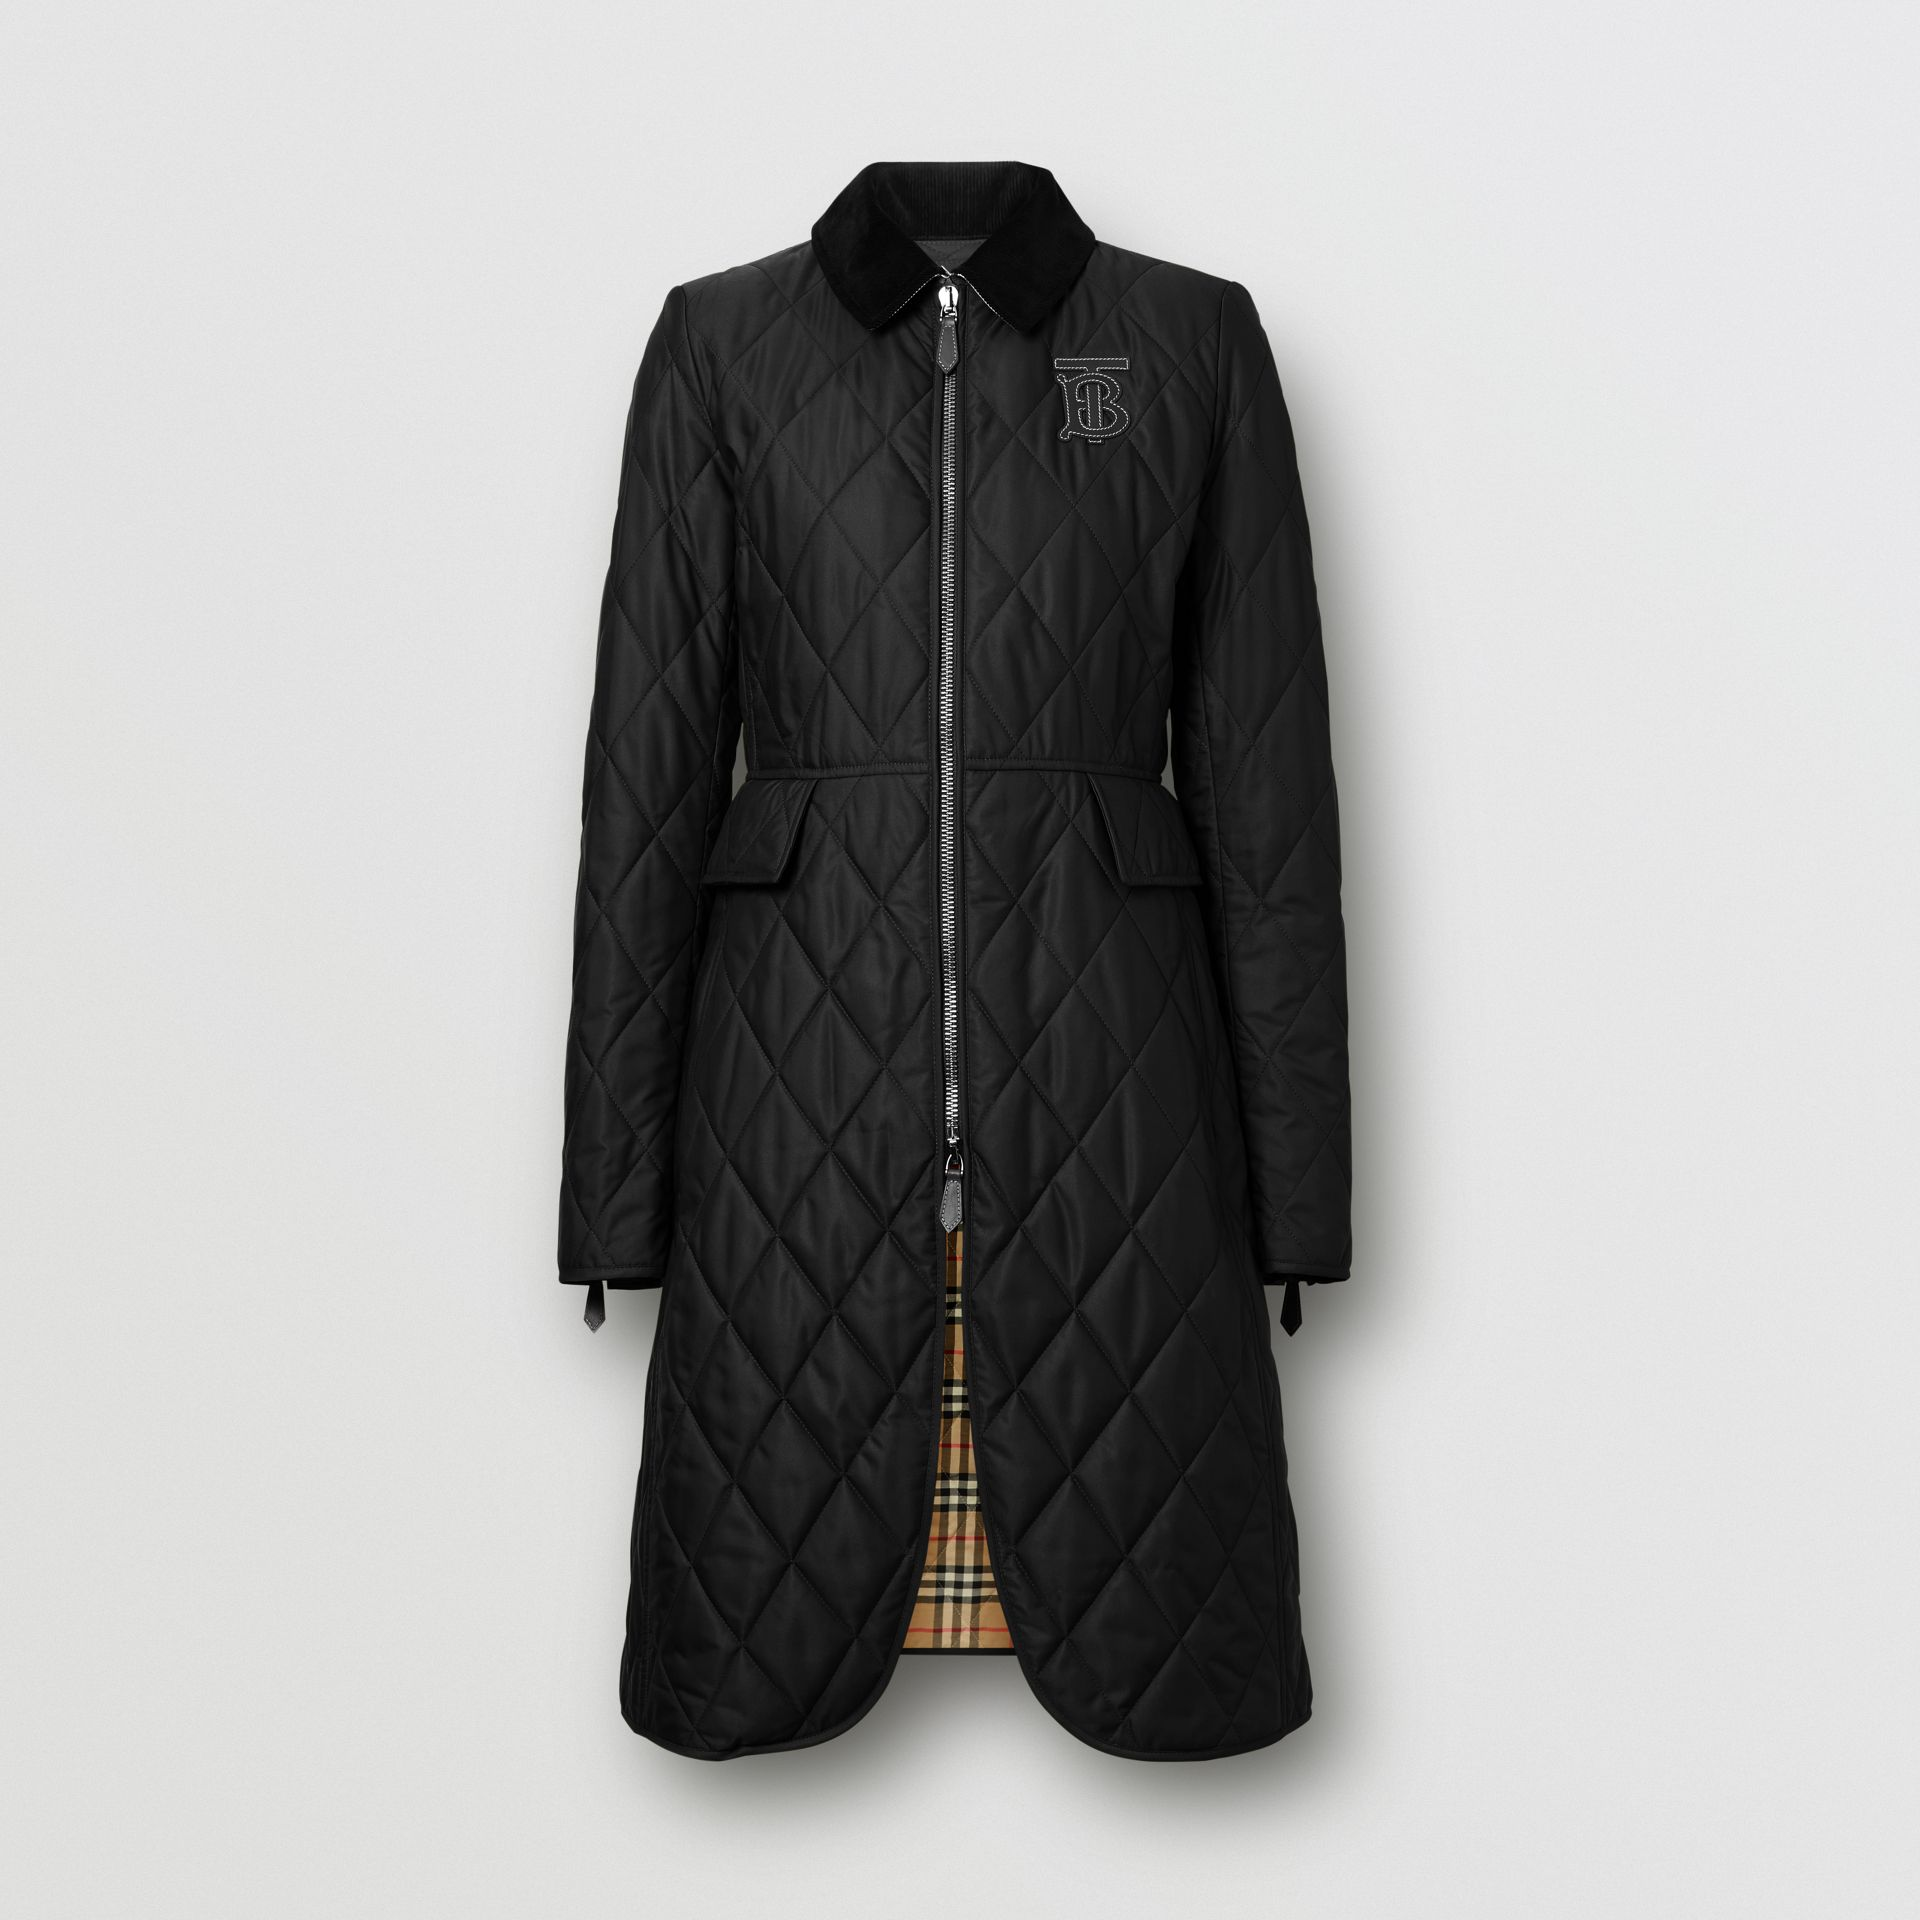 Monogram Motif Quilted Riding Coat in Black - Women | Burberry United Kingdom - gallery image 3